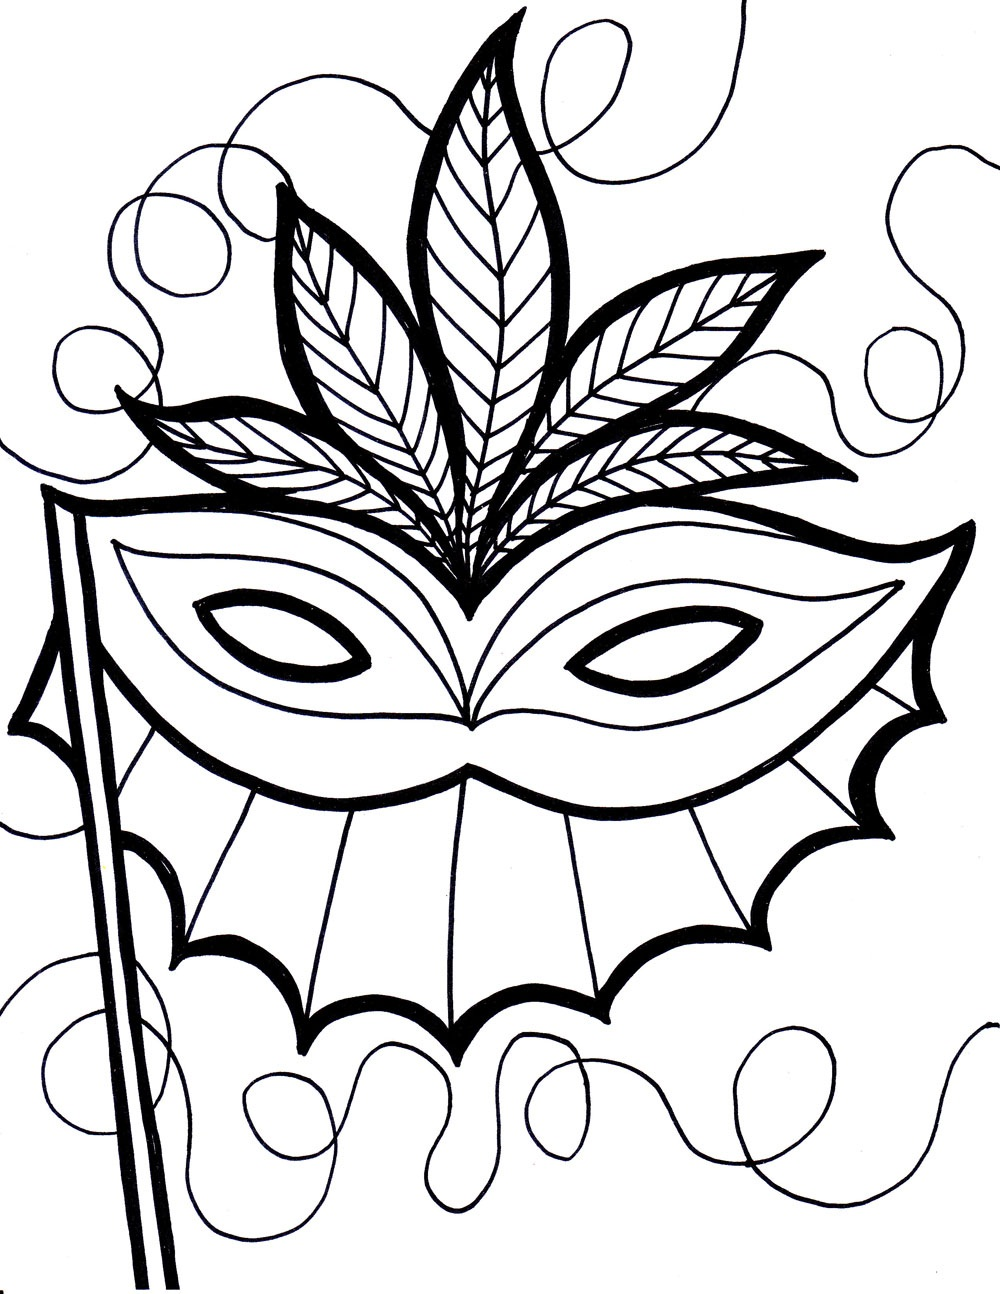 free printable mardi gras coloring pages for kids, coloring pages